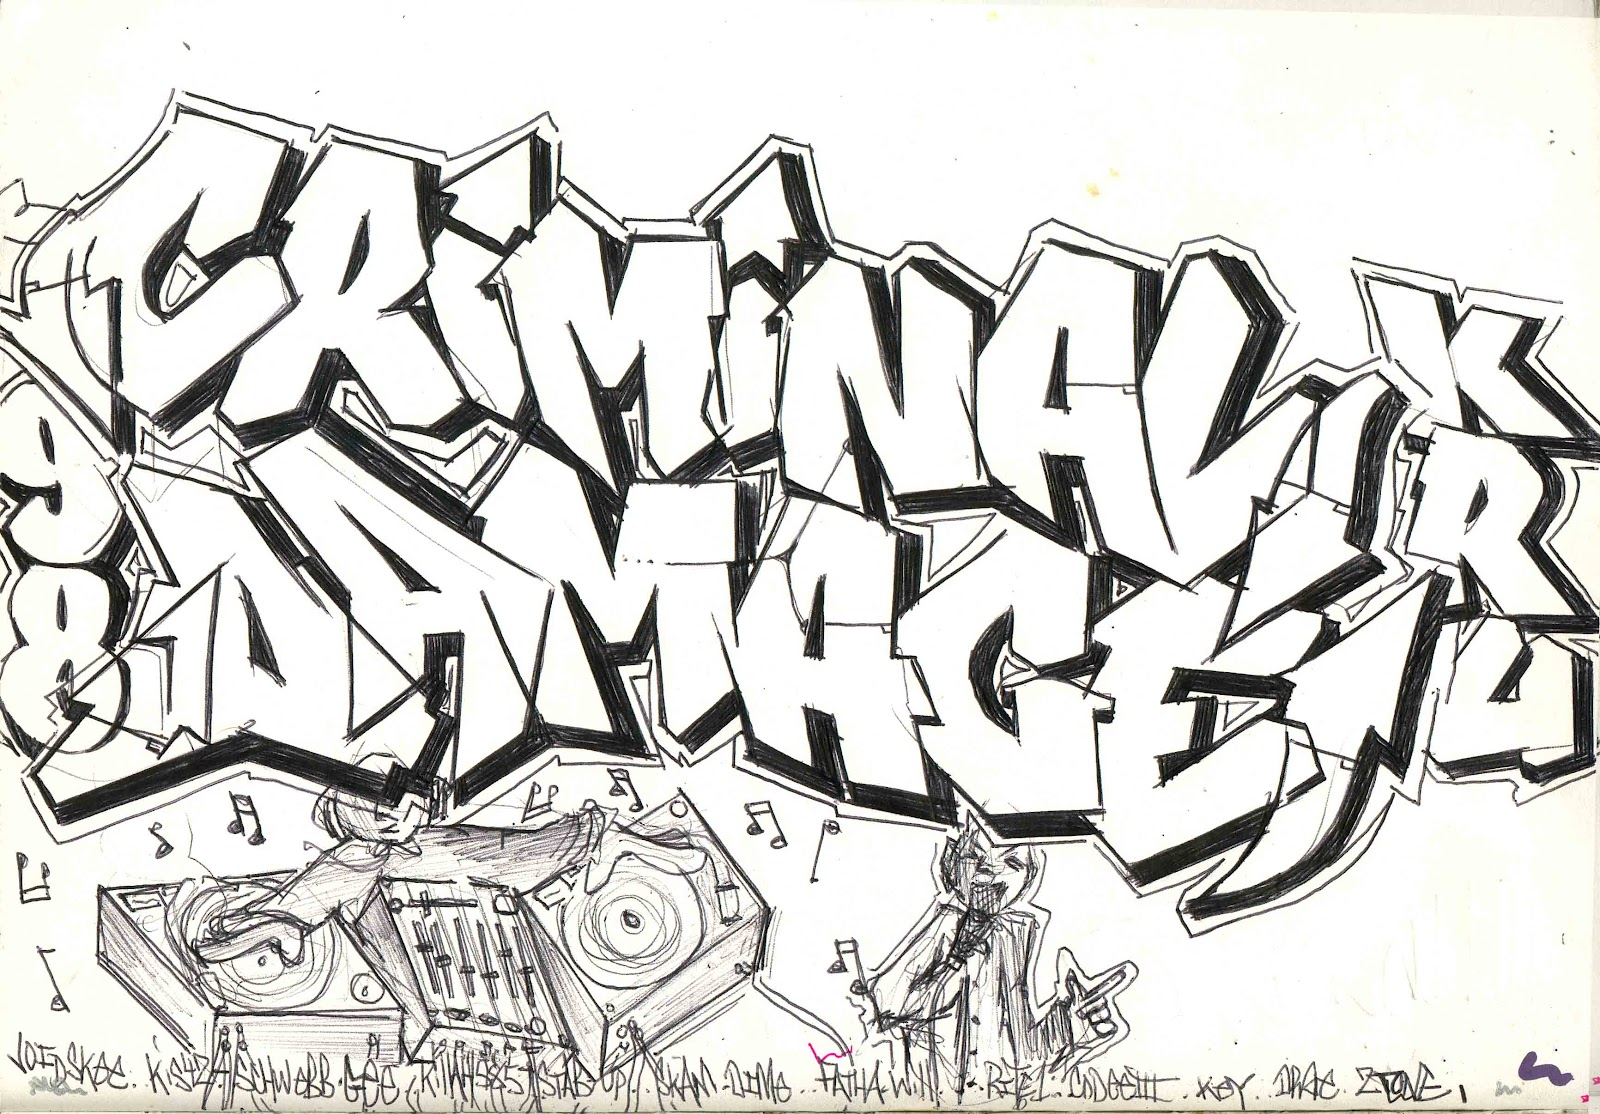 Least Blogged: Digging in the sketchbook crates.. circa 95-98